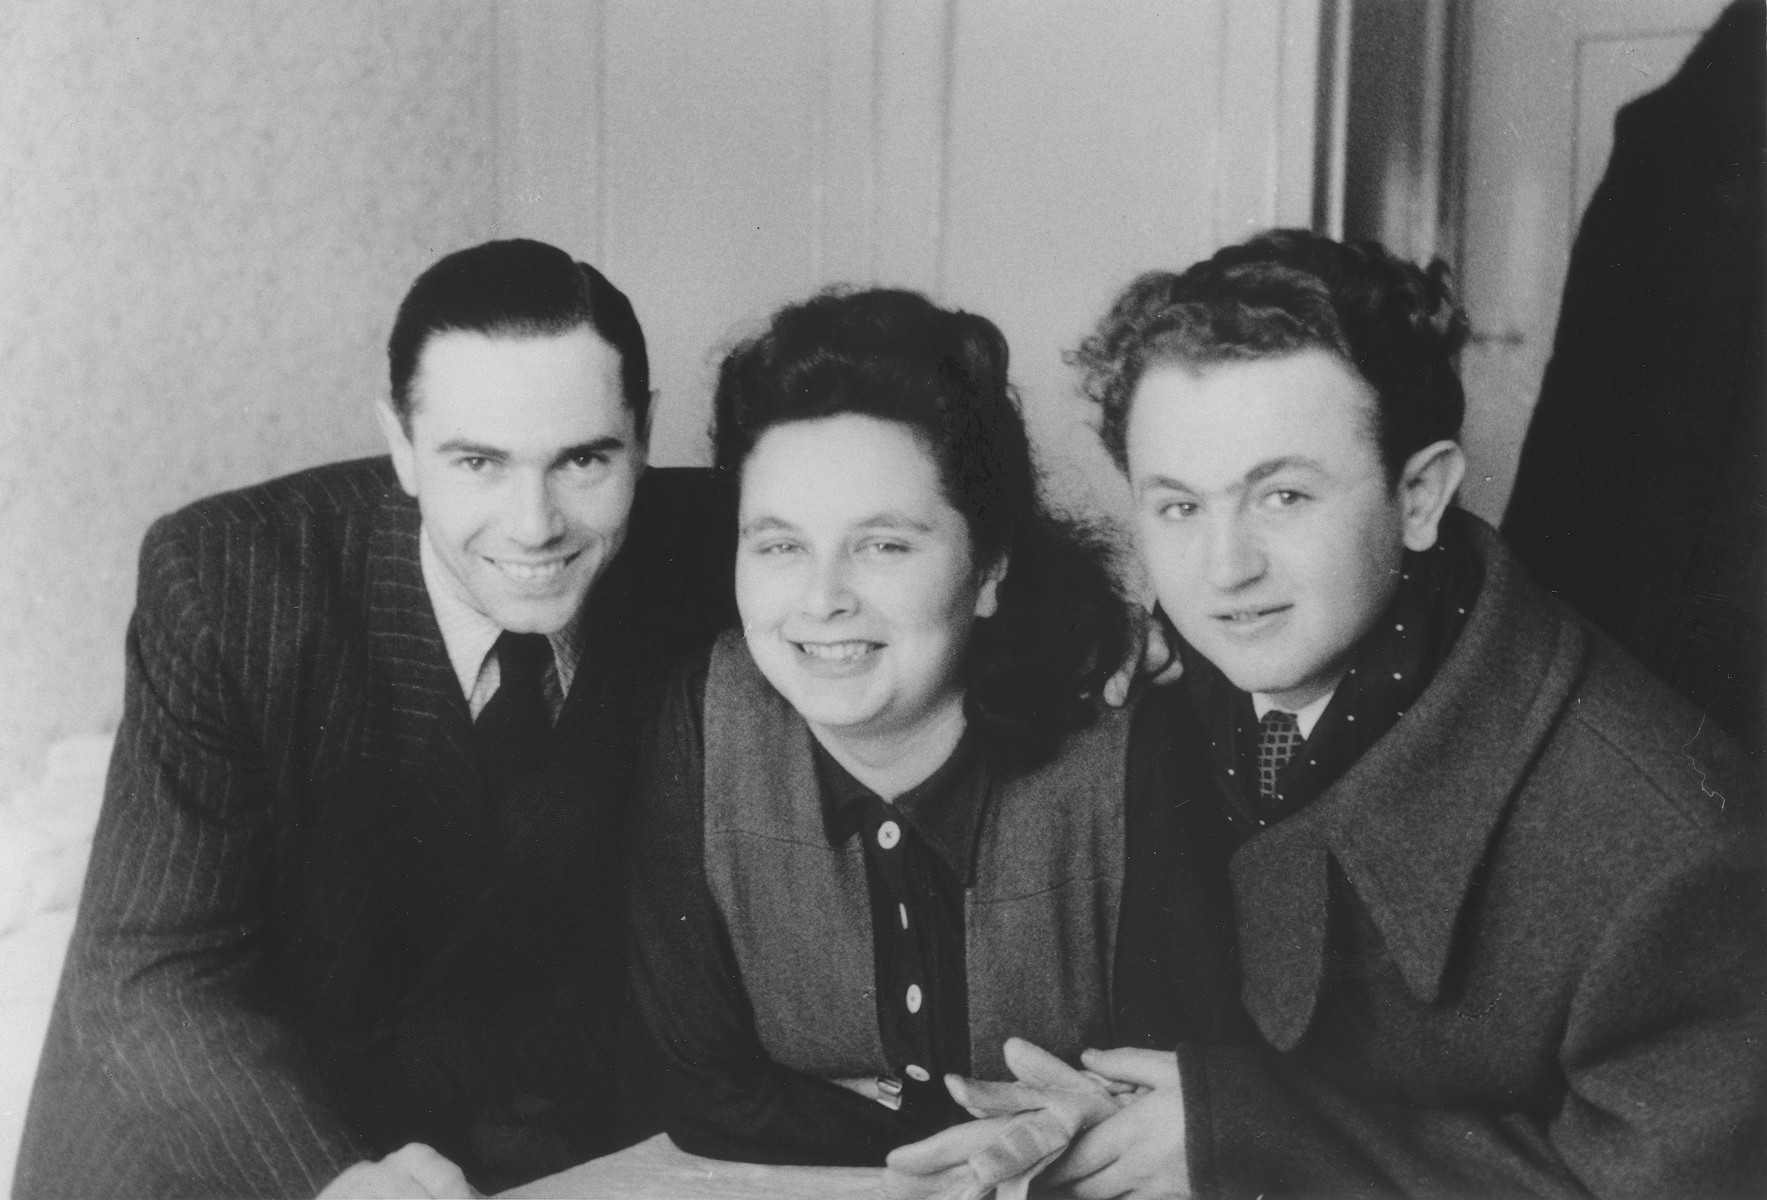 Three Jewish DPs in the Schlachtensee displaced persons camp.  Pictured from left to right are Leonhard and Margot Natkowitz and Yeshayahu Zycer.  The Natkowitz' were teachers in the DP camp.